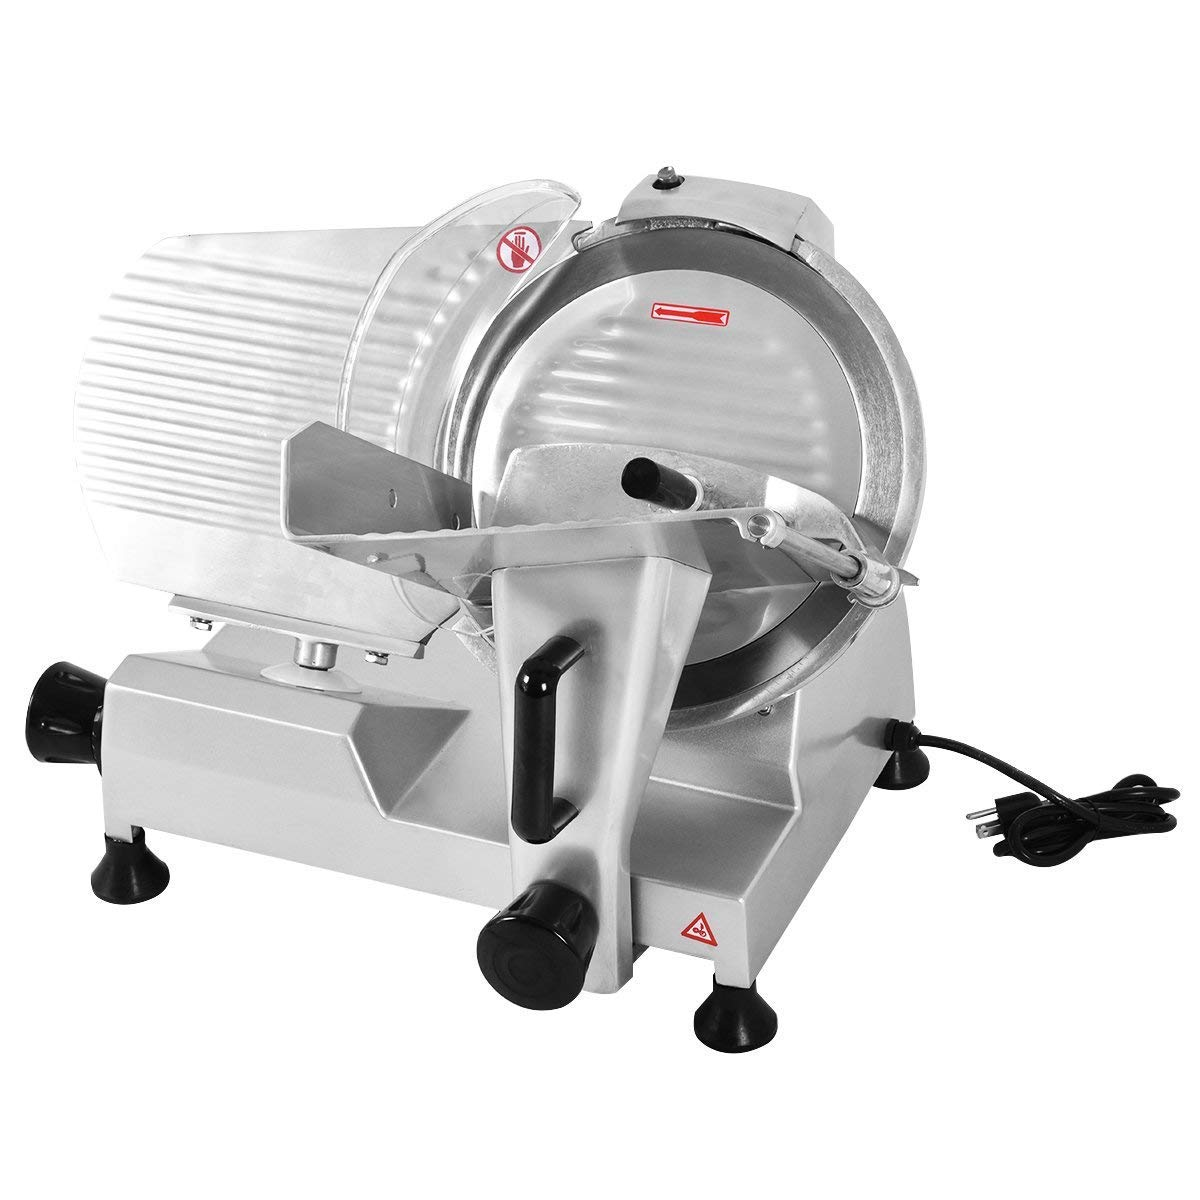 Tangkula Electric Slicer 12 Commercial Meat Slicer Machine For Home Kitchen Restaurant Heavy Duty Chrome Plated Stainless Professional Semi Auto Kitchen Deli Cheese Food Vegetable Slicer Cutter Buy Online In Bahamas At Bahamas Desertcart Com